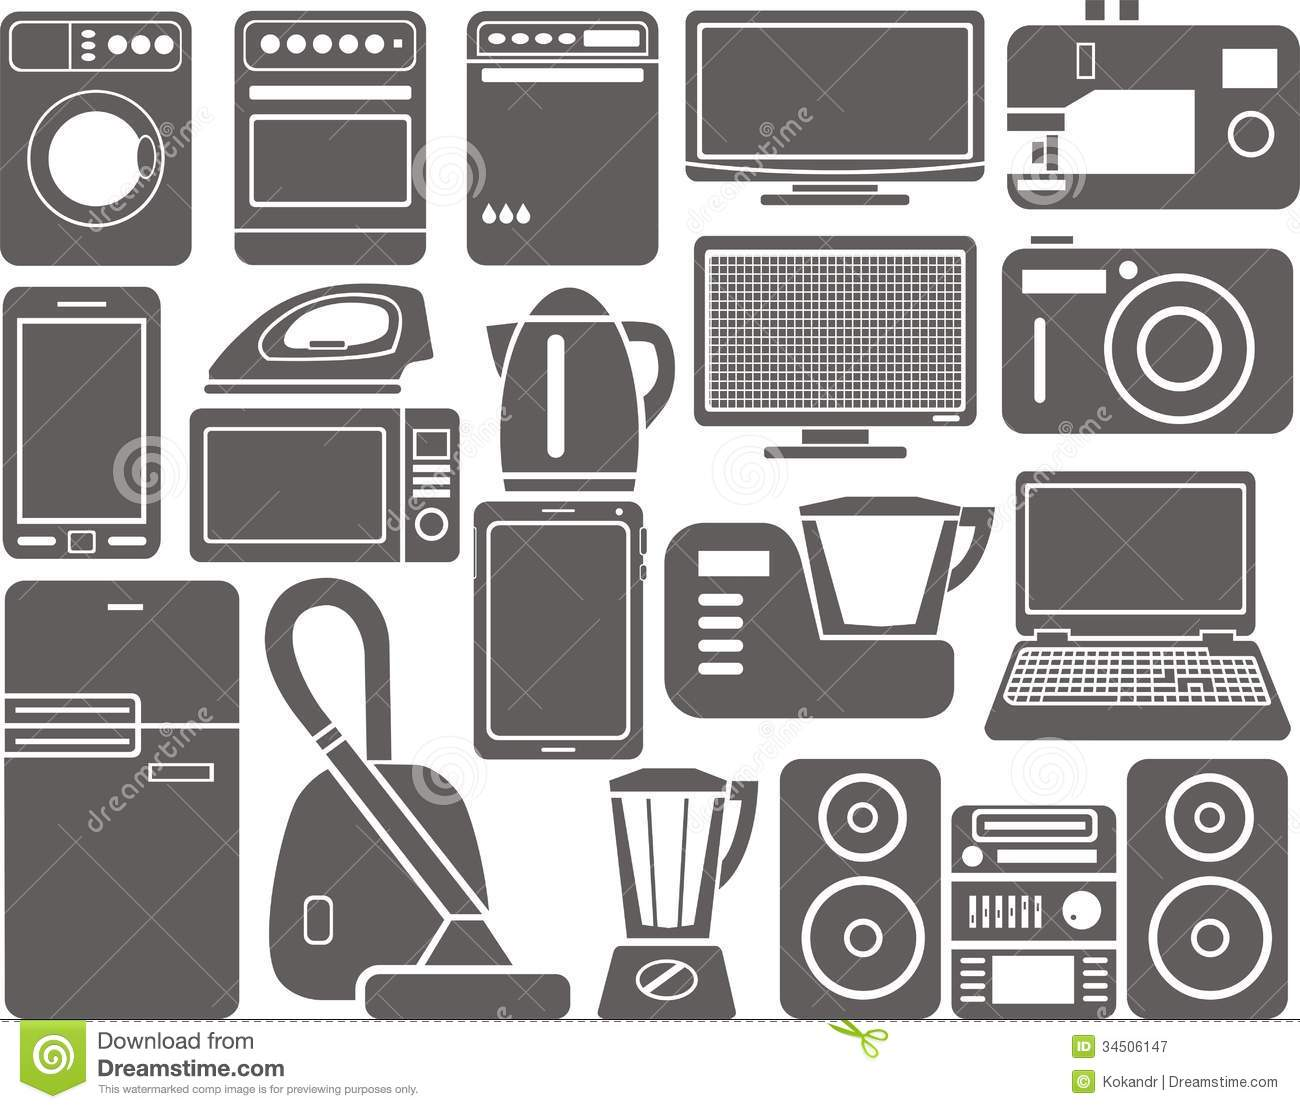 Home Appliances Royalty Free Stock Photography - Image: 34506147